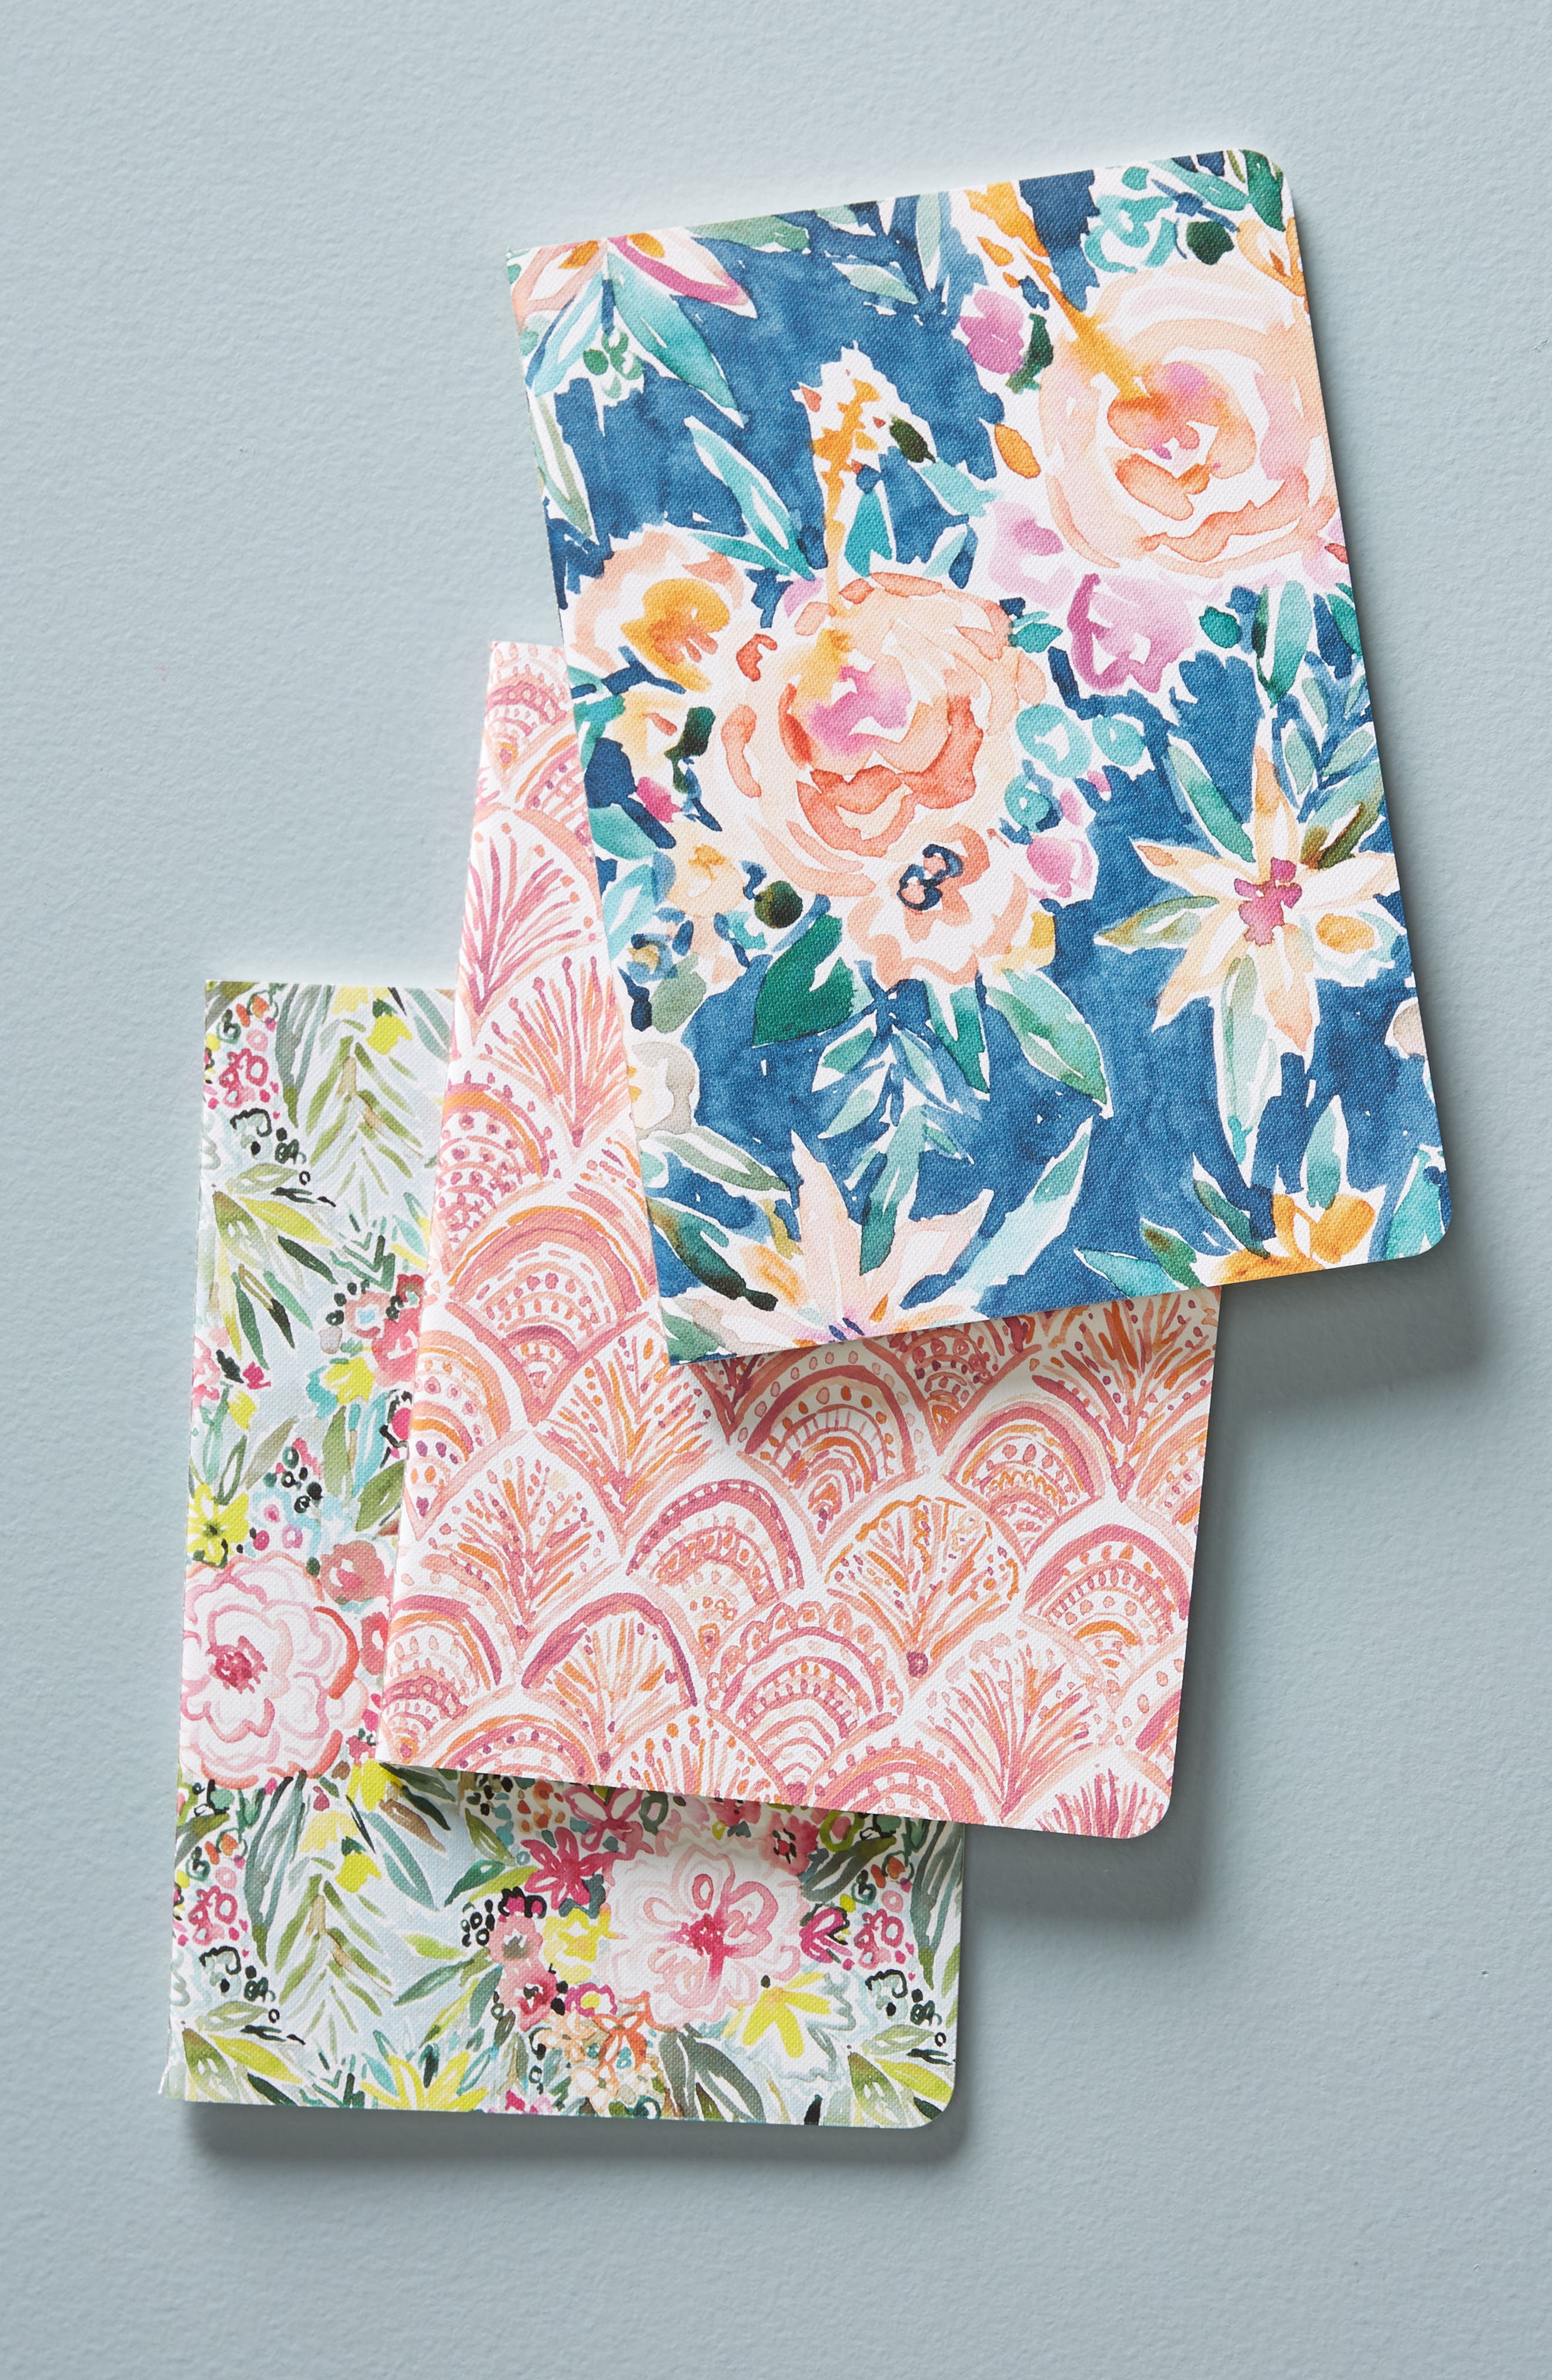 Wild At Heart Set of 3 Journals,                         Main,                         color, Blue Combo